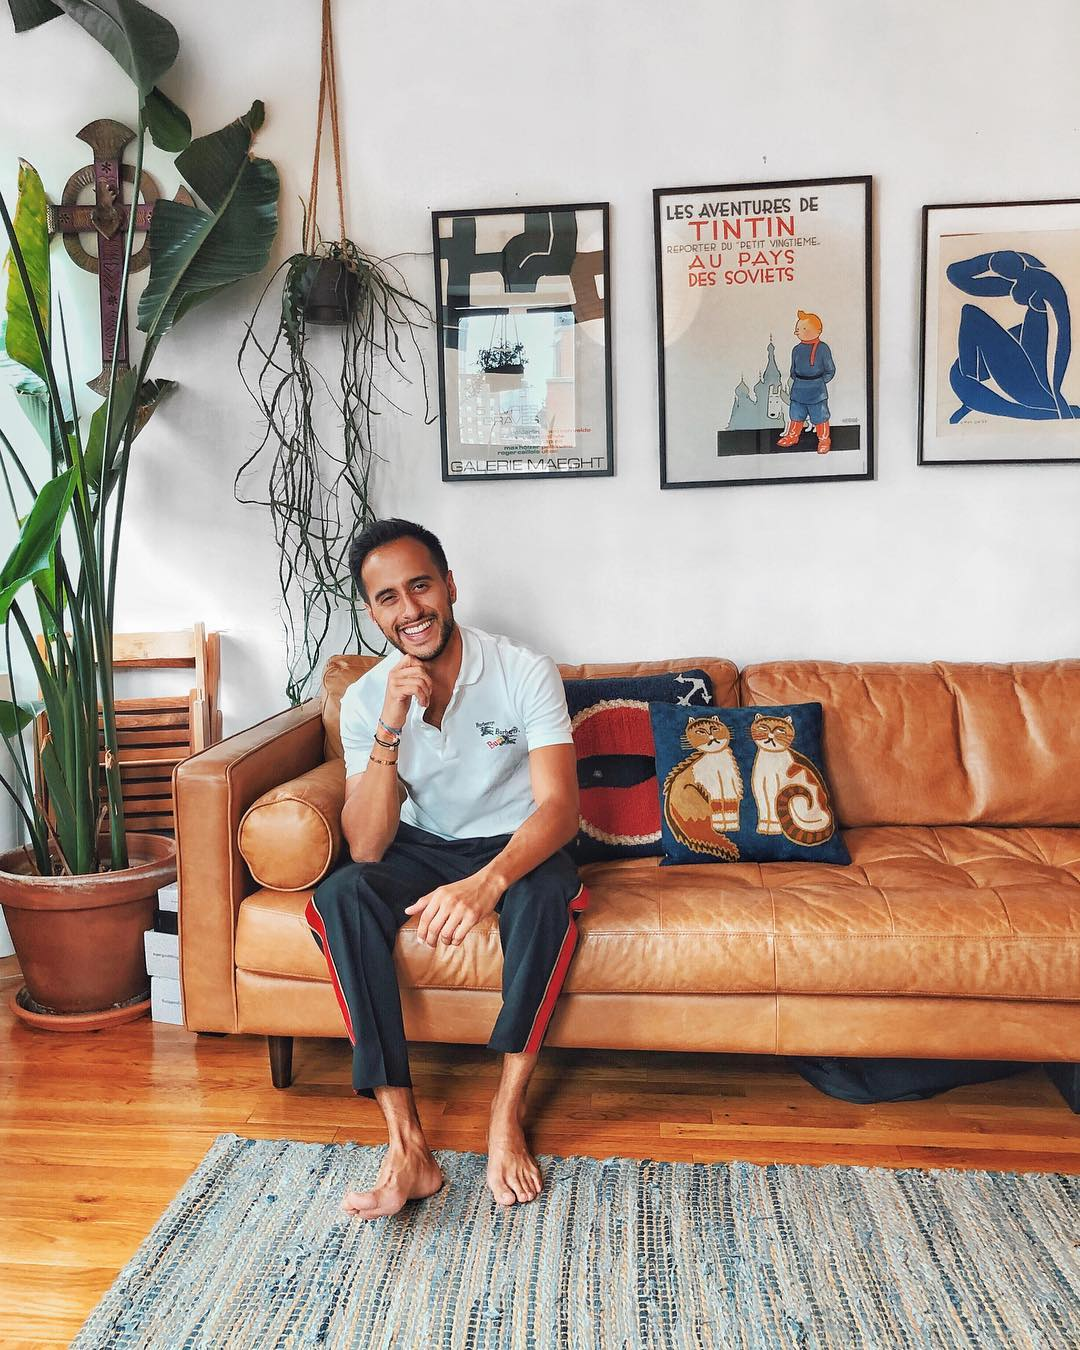 Moti Ankari    @motiankari  is a menswear blogger based in New York. His content consists of personal style, trend analysis, and travel. You may have seen him in GQ, Forbes, and Esquire.He's collaborated with Fohr on Fossil and Armani Beauty.